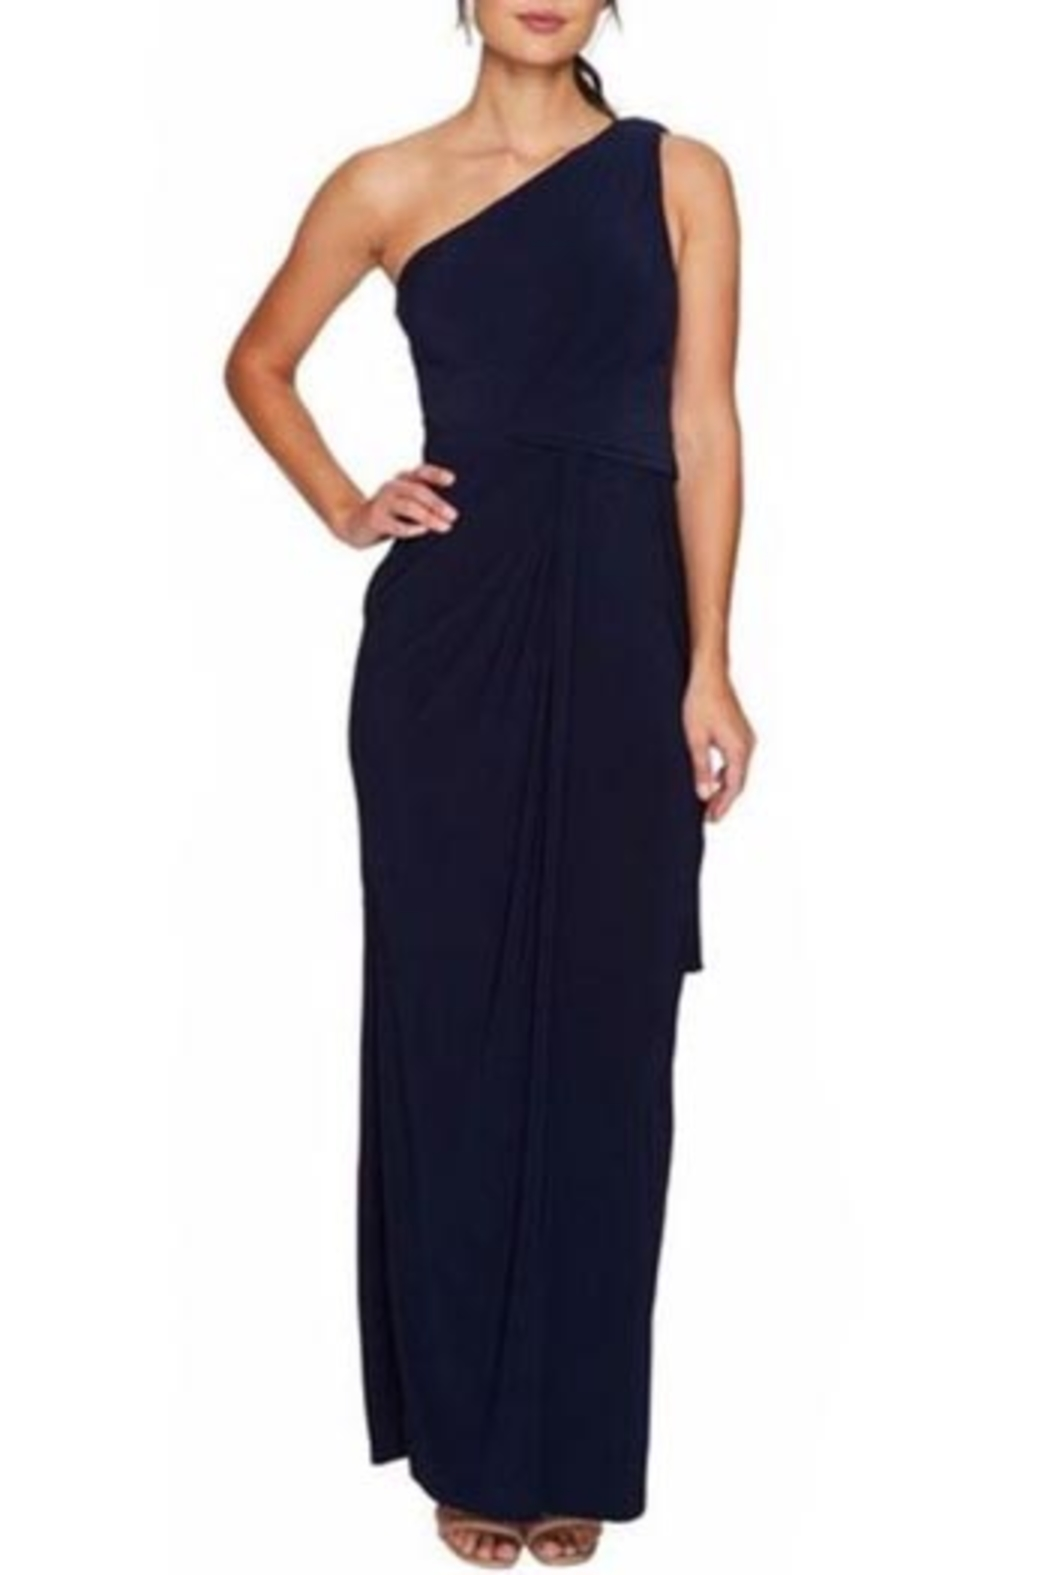 Adrianna Papell One-Shoulder Draped Gown from Ohio by e.j. hannah ...